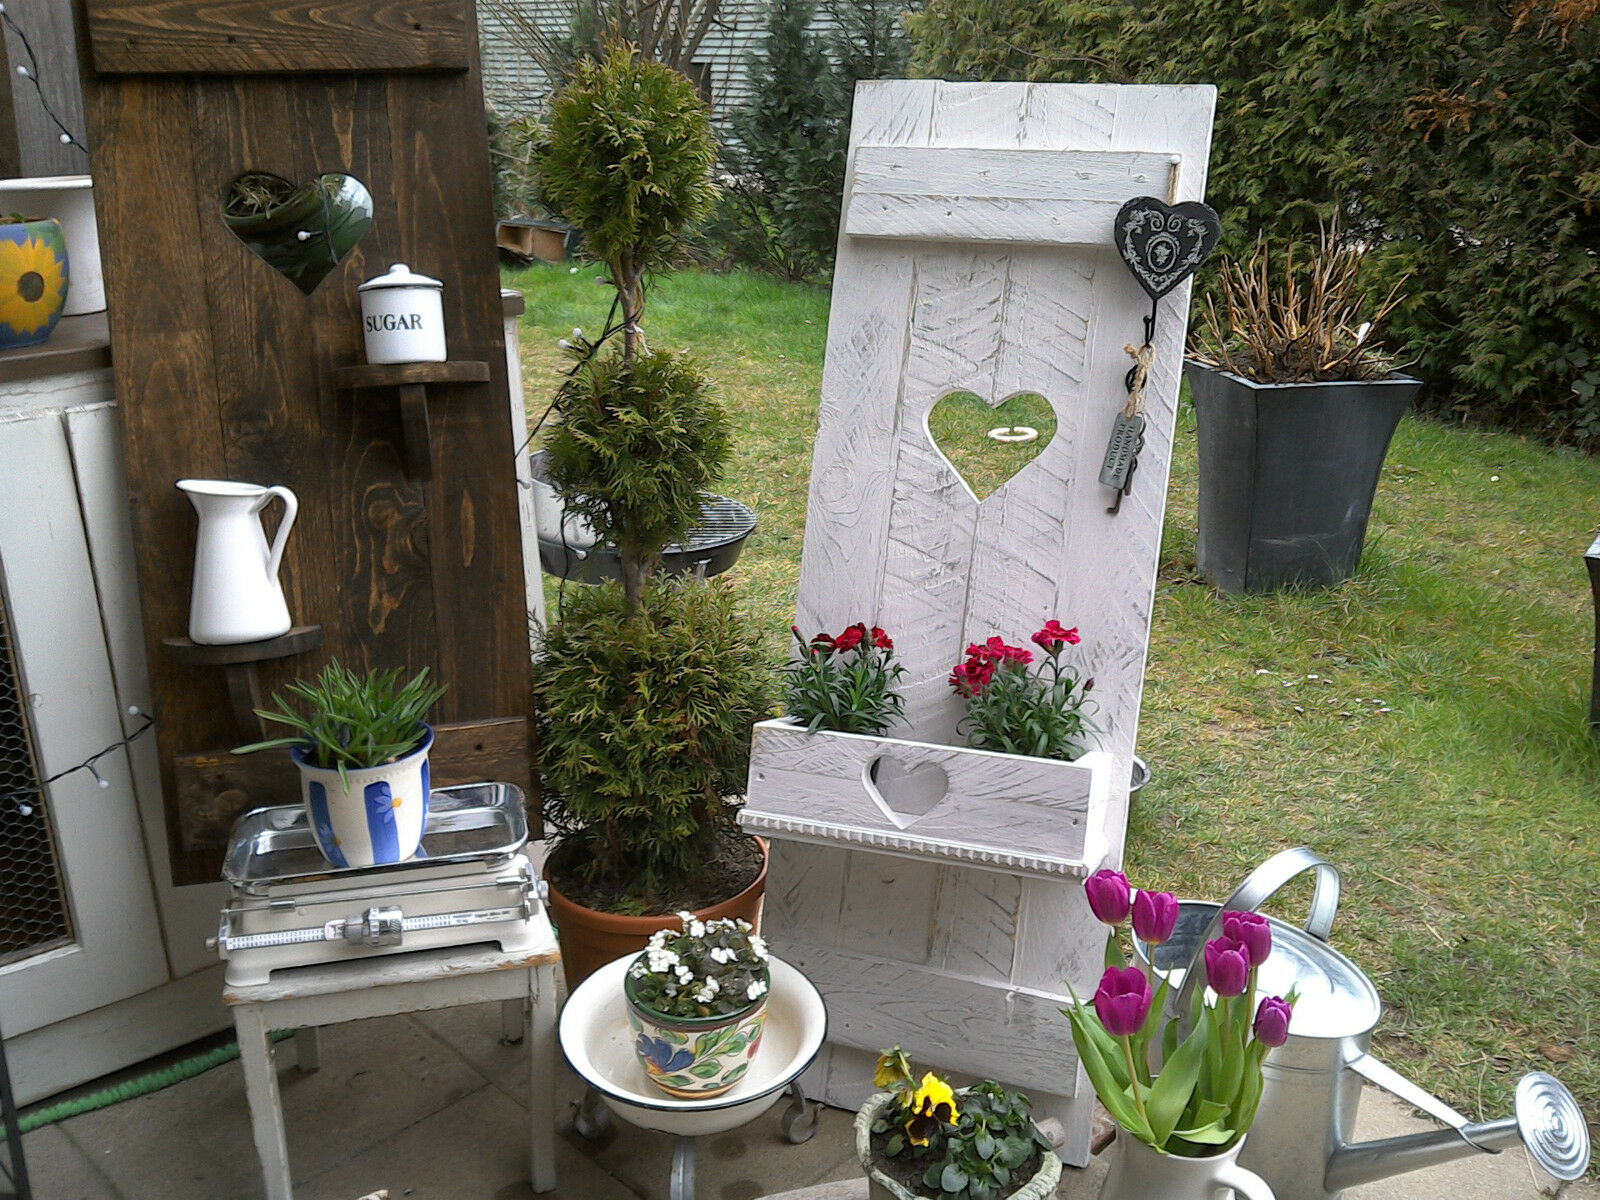 shabby fensterladen herz blumen kasten pflanz kasten garten deko holz massiv eur 84 50. Black Bedroom Furniture Sets. Home Design Ideas